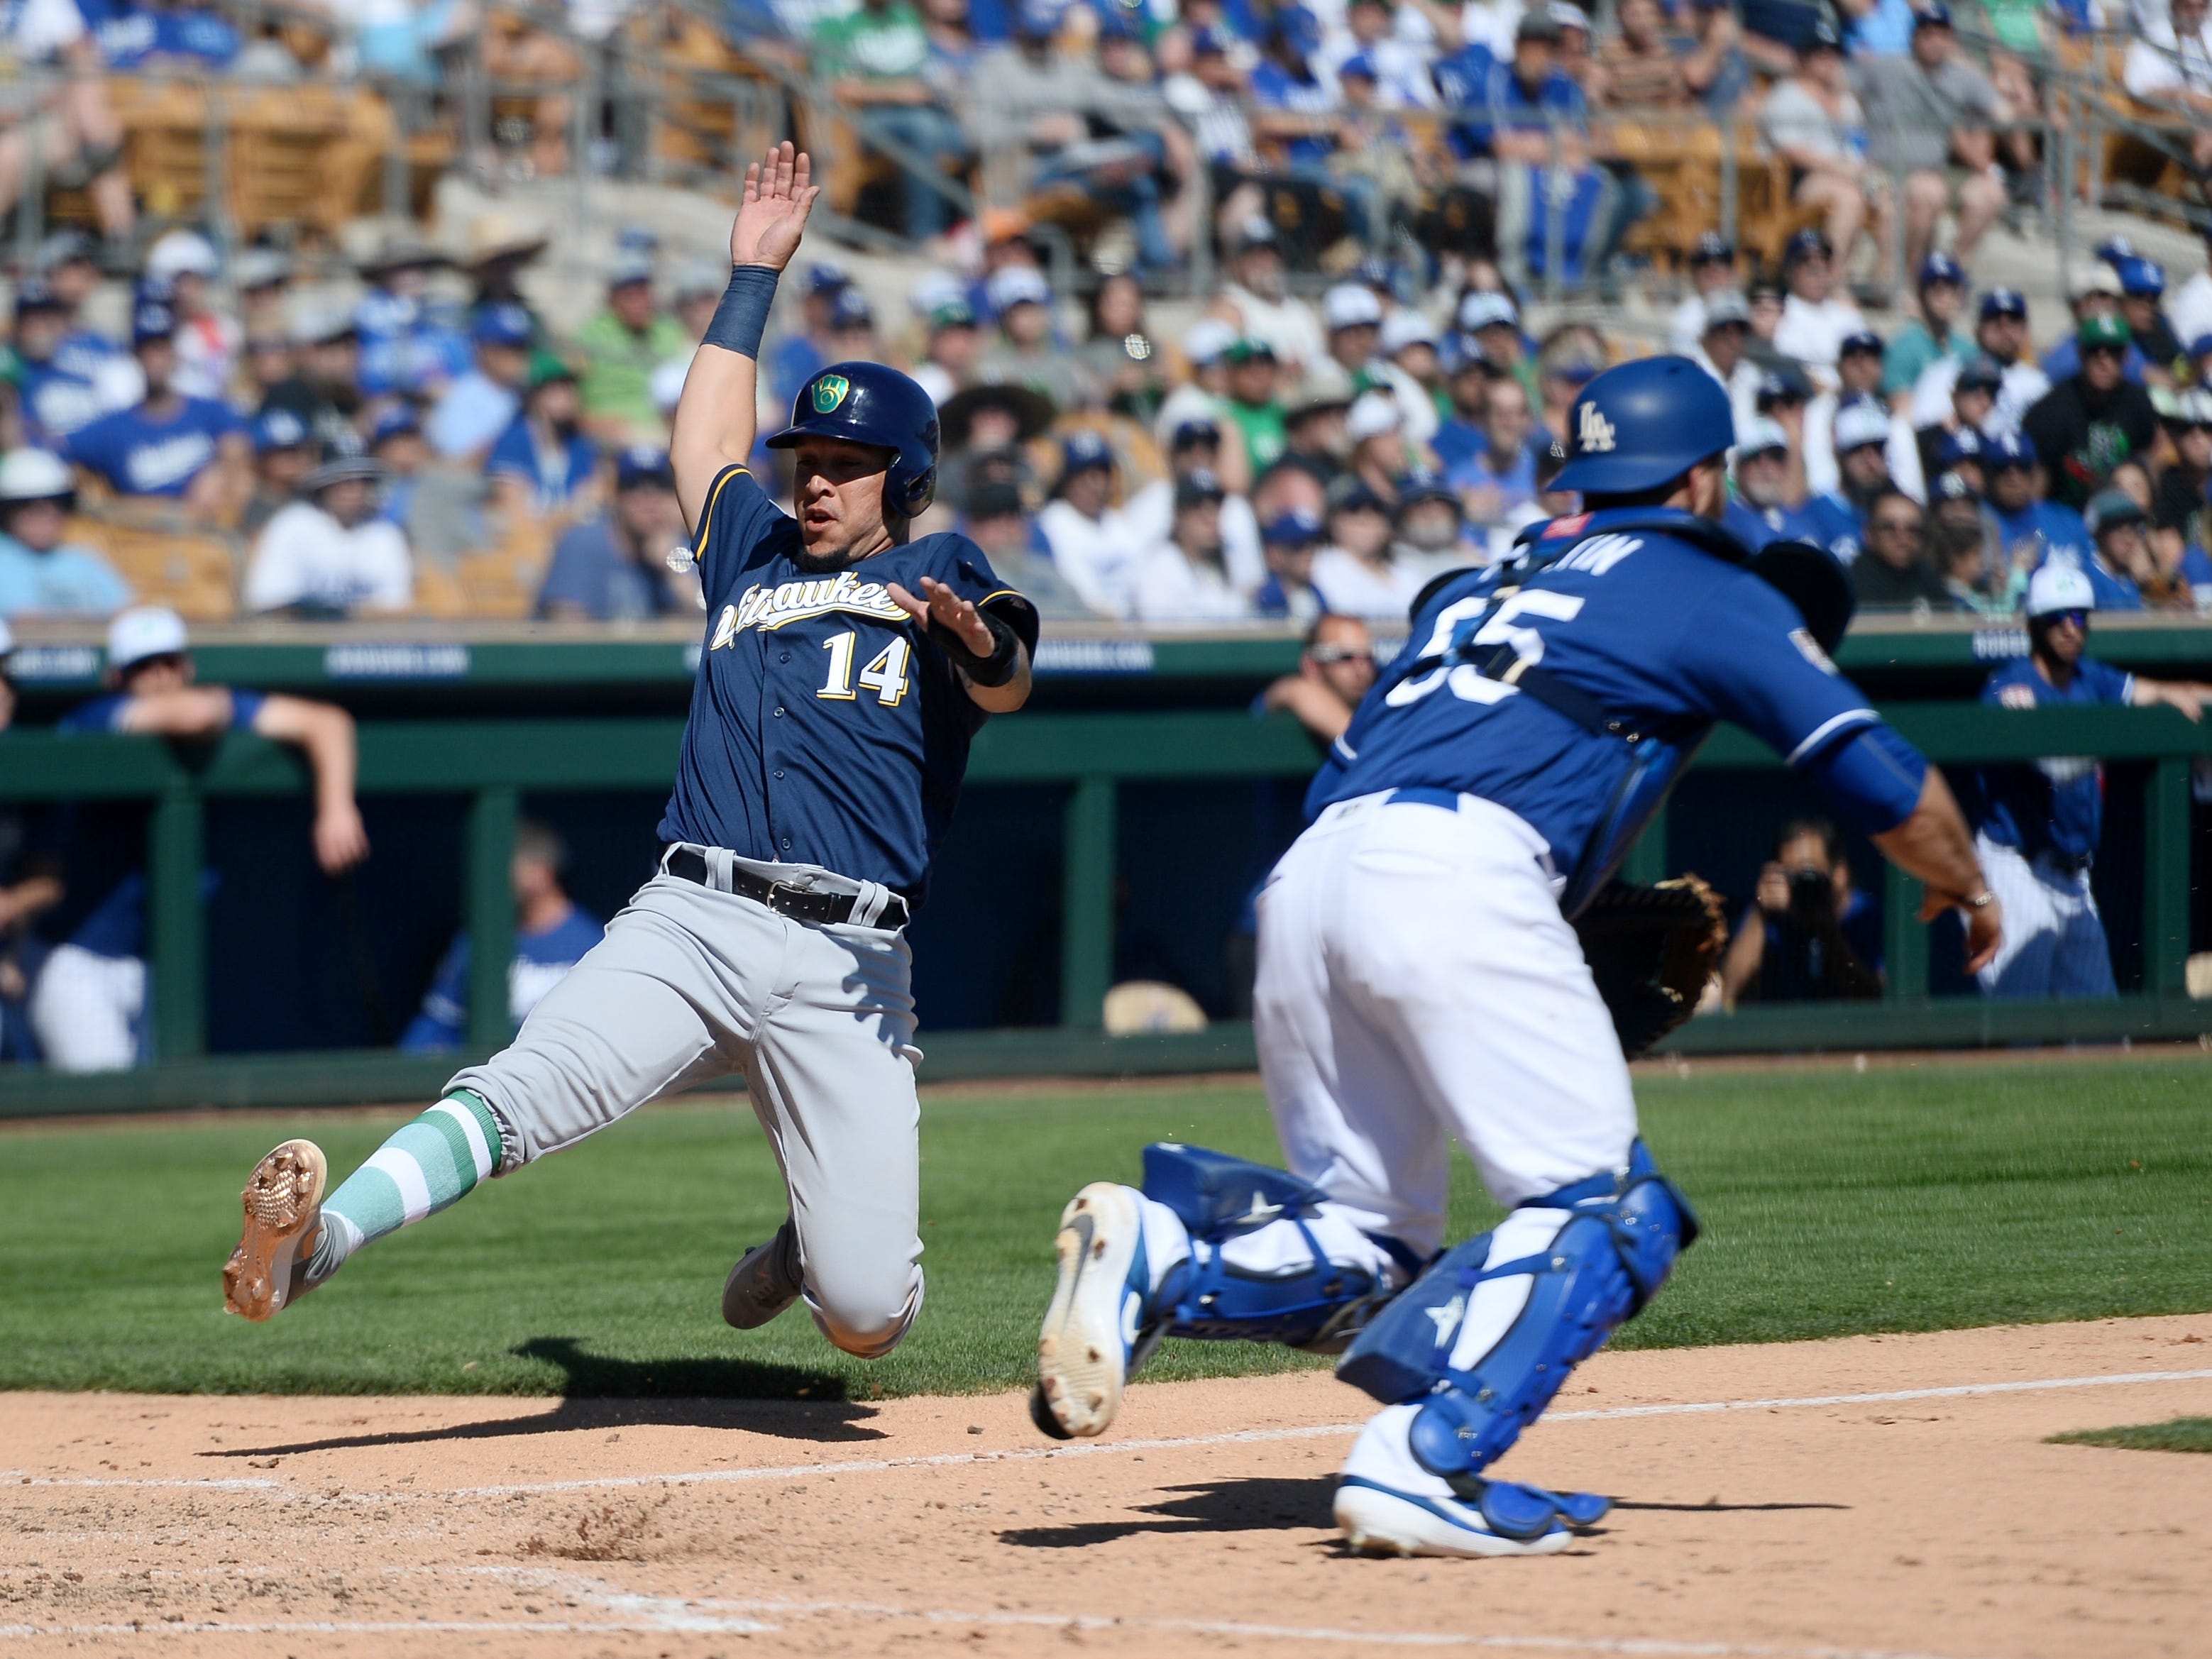 Hernan Perez comes flying across home with the Brewers first run against the Dodgers as he scores on a single by Jesus Aguilar in the third inning.